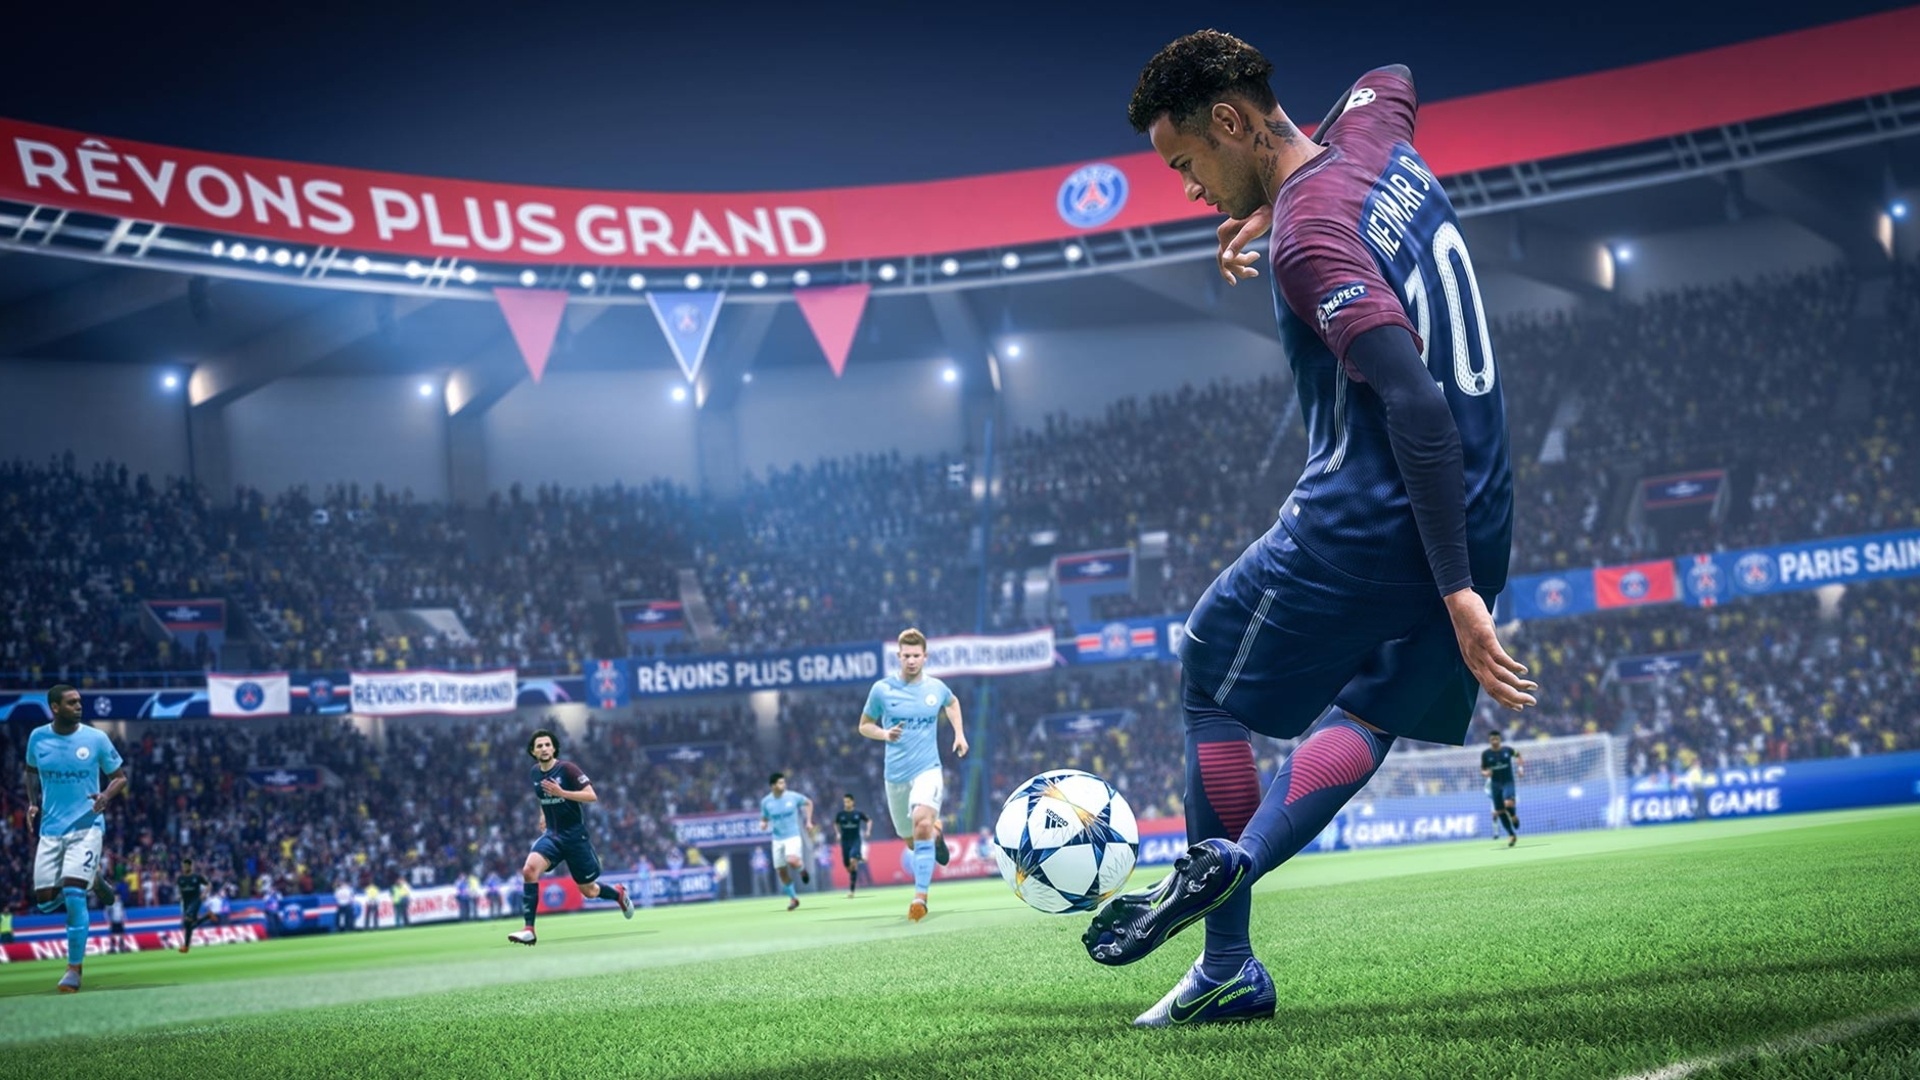 FIFA 19 Meest Gedownloade Game In Europese PS Store In